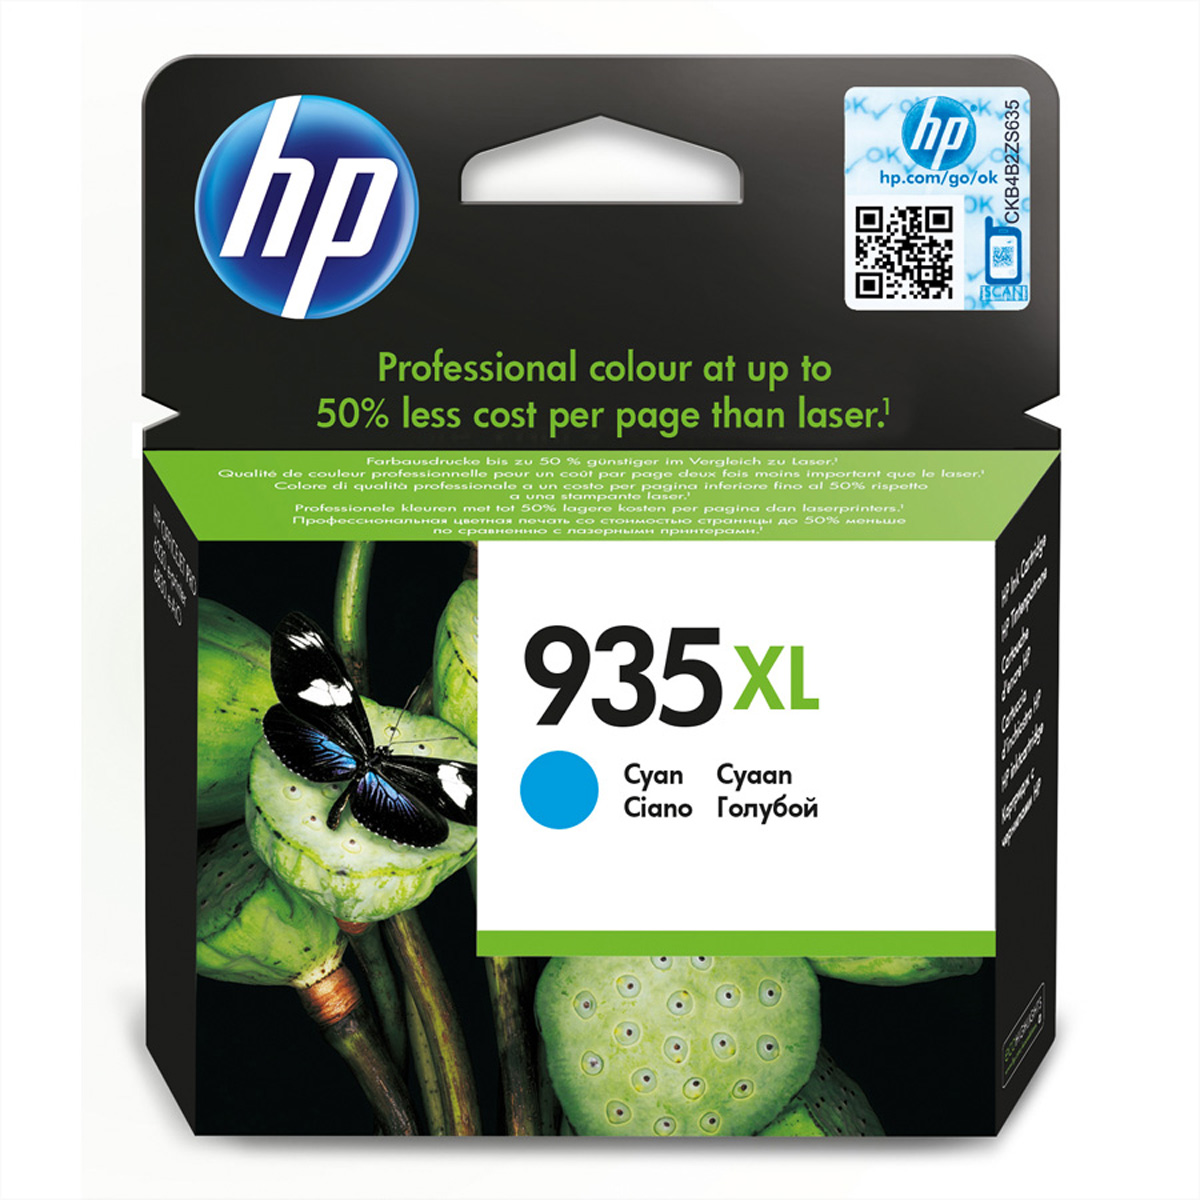 C2P24AE, Nr. 935XL, Druckpatrone, cyan für HP-OfficeJet 6812 / 6815, OfficeJet P